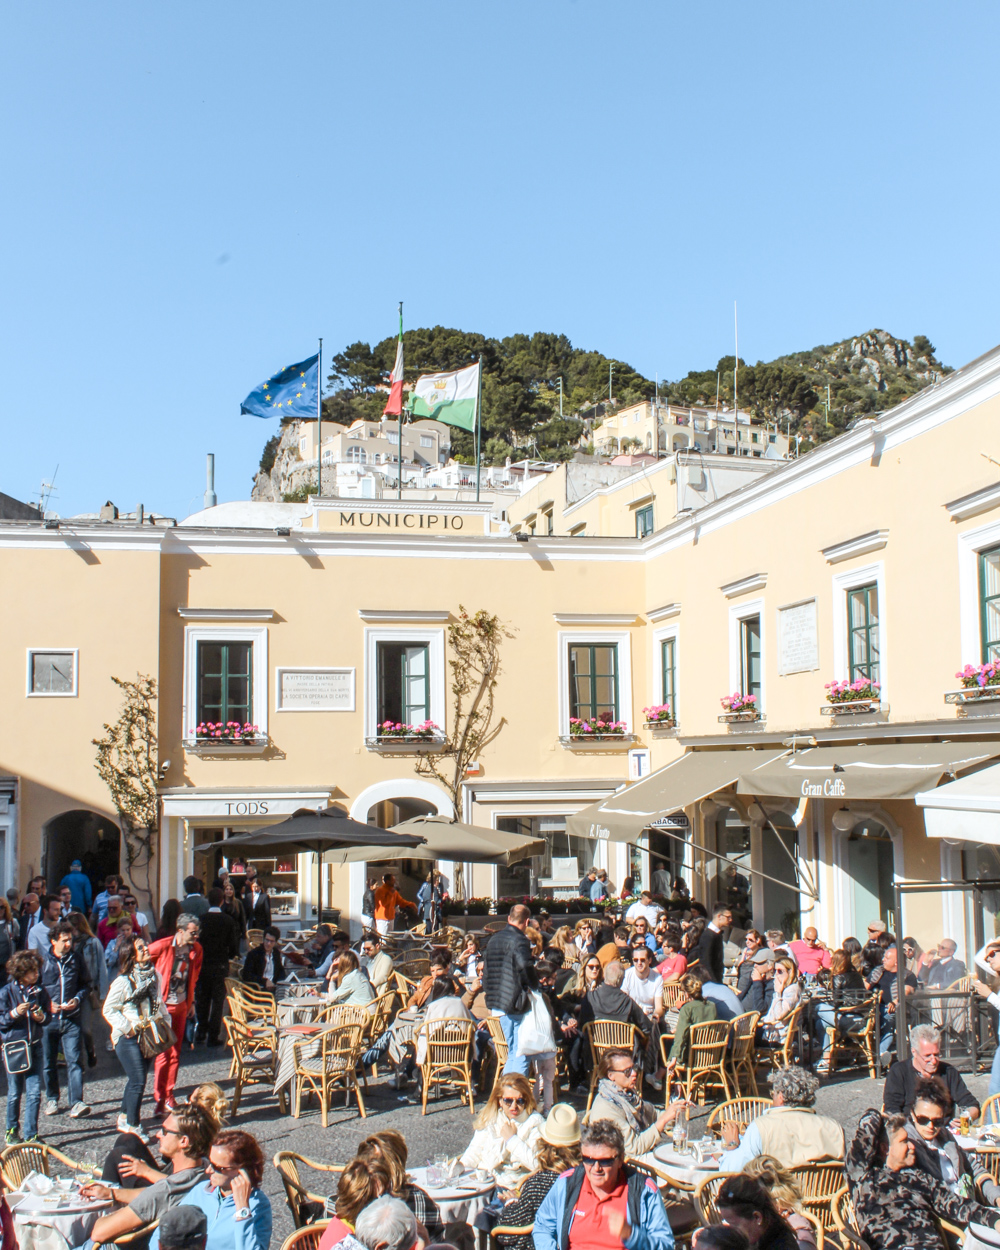 Islands in Italy Capri Piazza-